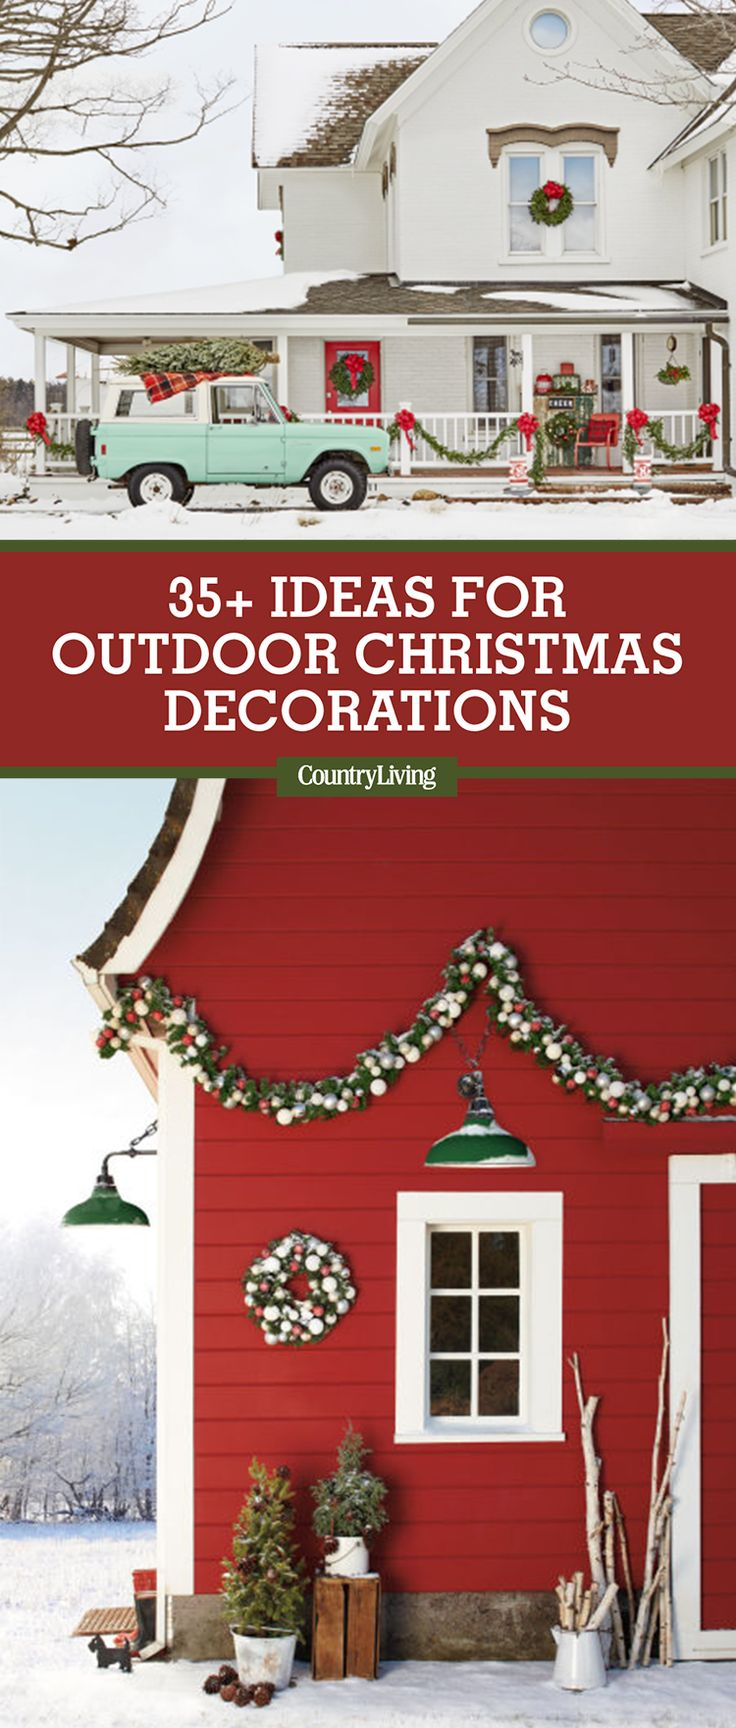 34 classic country ideas for outdoor christmas decorations for Country porch coupon code